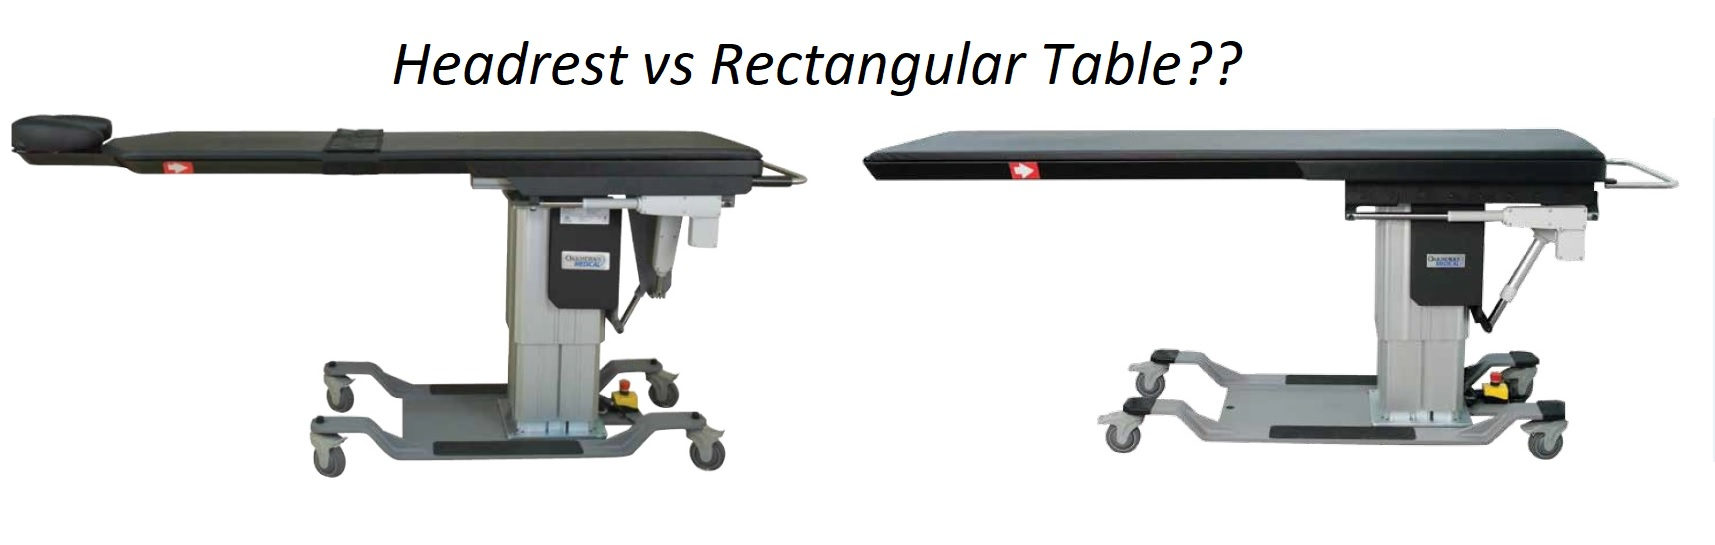 Biggest Question on C-Arm Table – Headrest or Rectangular Top?